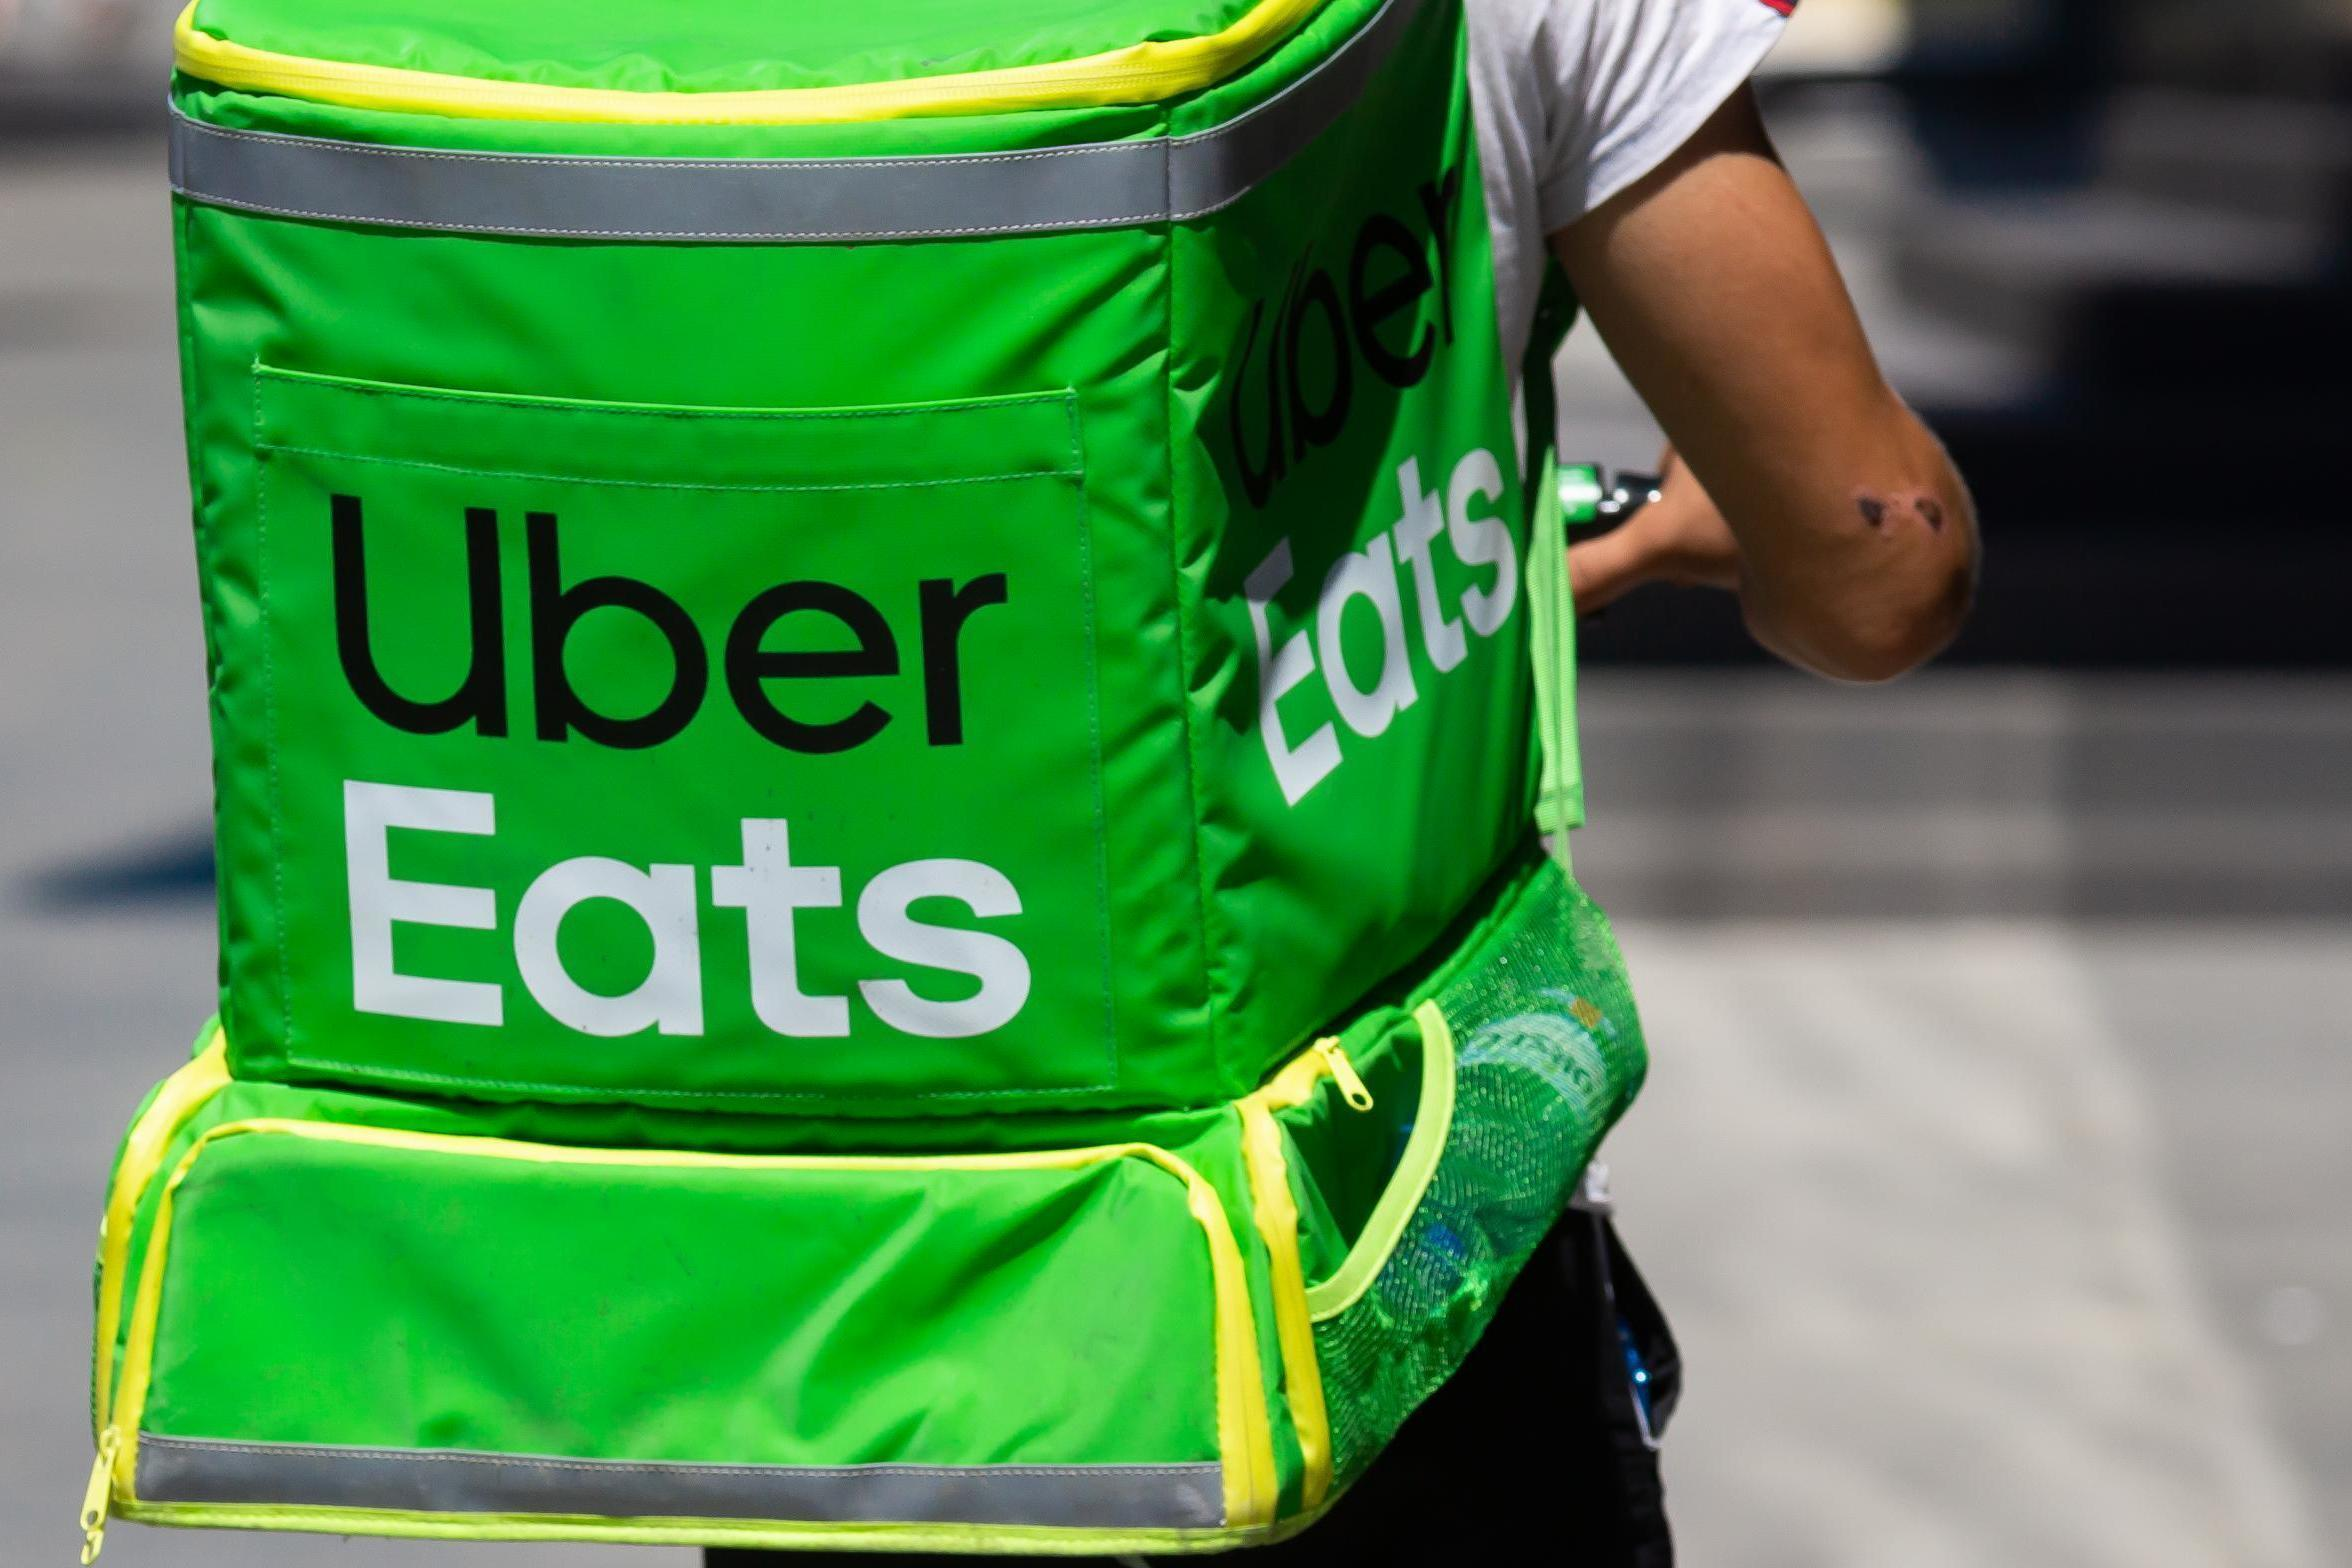 Uber Eats offers free delivery from restaurants owned and run by black people